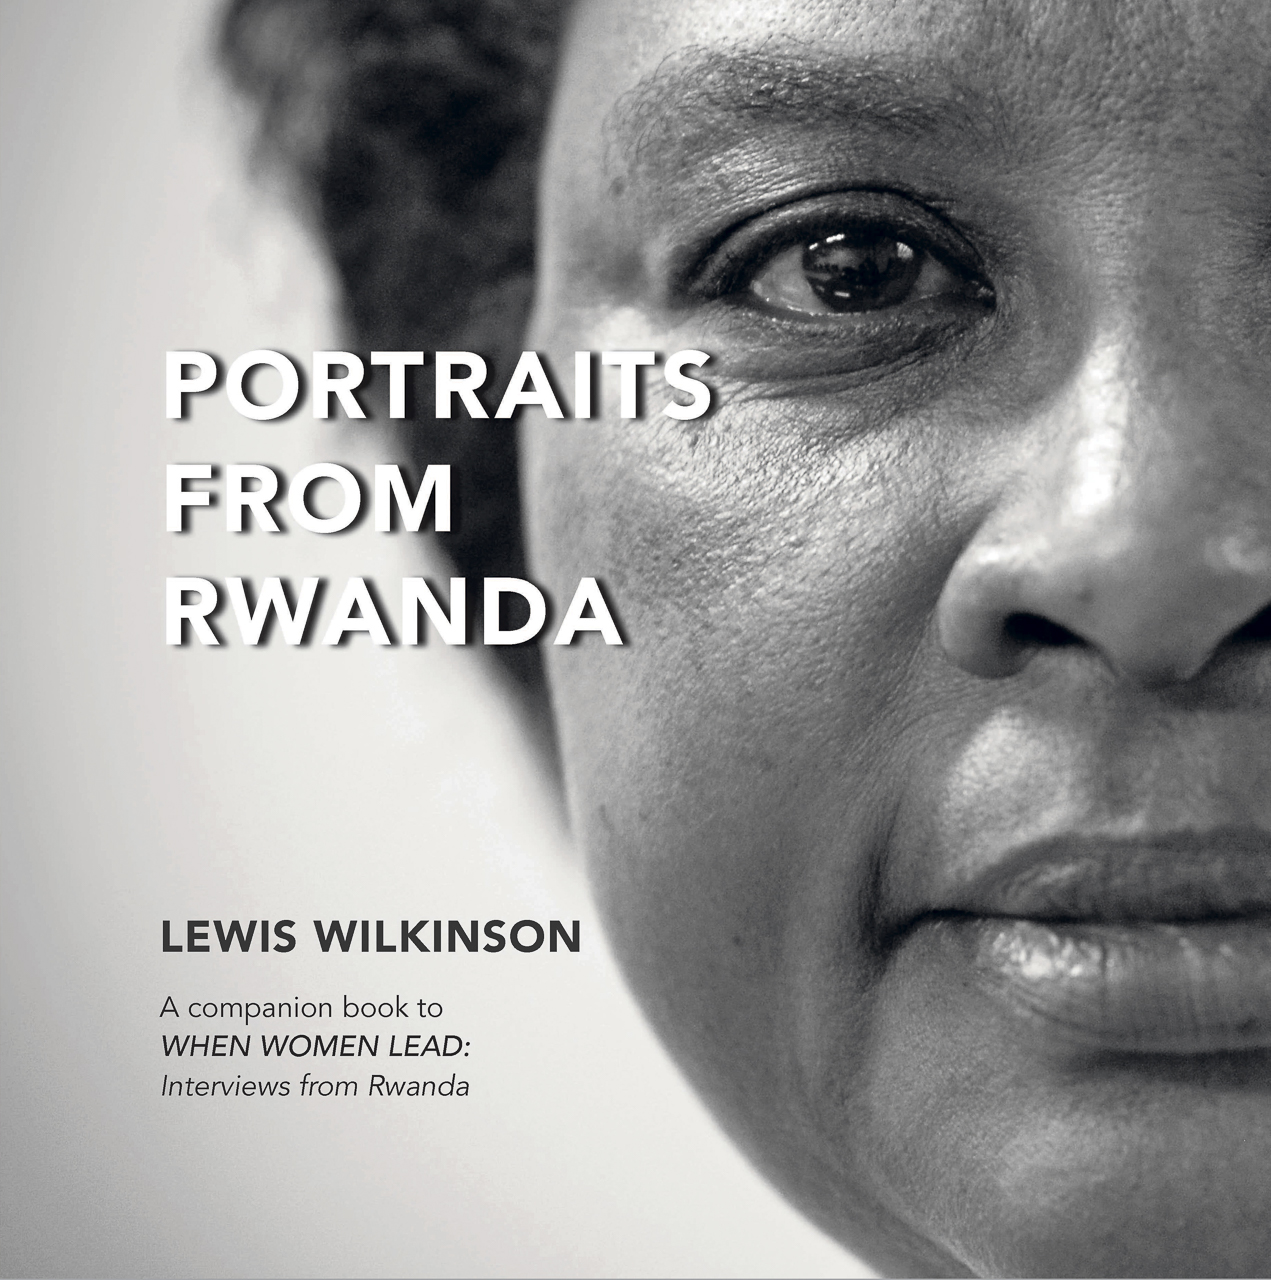 Client: Lewis WilkinsonProject: Portraits of Women from Rwanda Photos and interviews by Lewis WilkinsonDesign: Paula GillenPrinter: Blurb